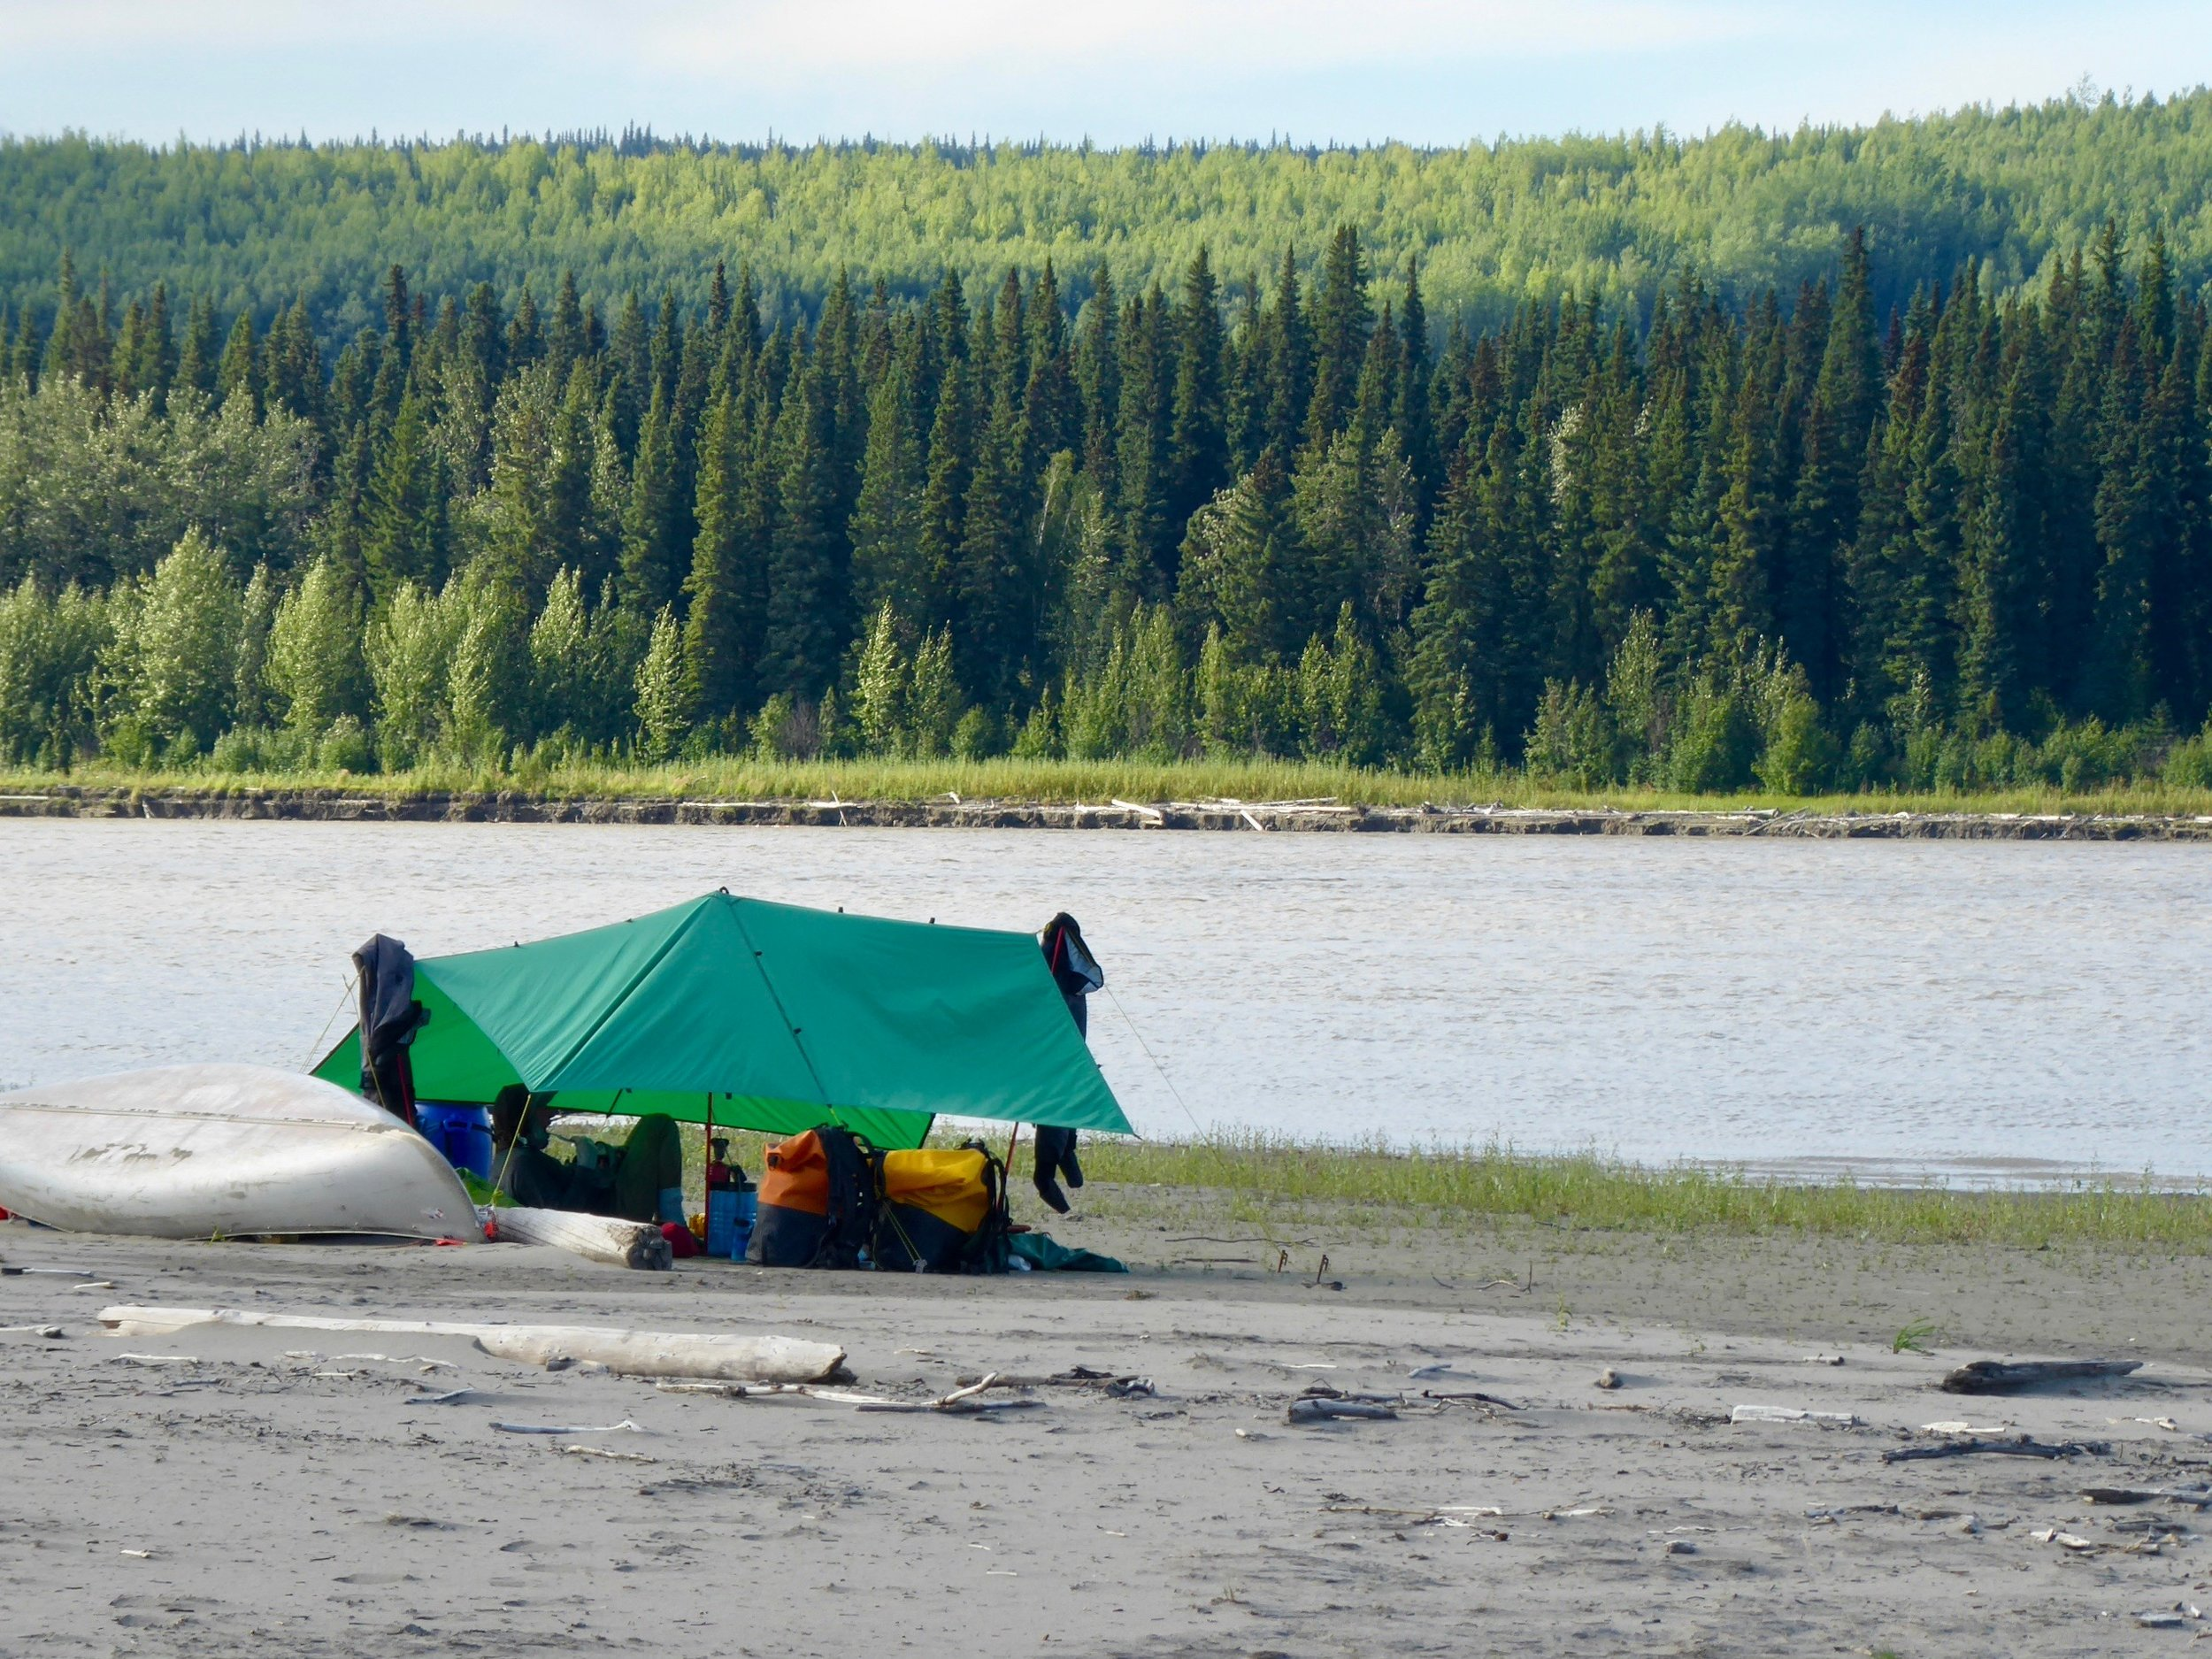 Tent stakes are easily able to be put into the sand.  There are definite different kinds of sand. We will have to experiment which ones are the best for putting the tent on. Today we paddled past the Koyukuk river which flows with a clear color into the Yukon. Upstream a ways is the town of Koyukuk, didn't really want to paddle up stream so passed on by. One of the books that we had read about the Yukon said that near here is the Last Chance Bar. Supposedly the last place one can buy alcohol from here to tBerintg Sea. We didn't see it, but really were not looking for it.  Each village makes their own decision about alcohol. We also met the man who told us about Slop Bucket Jerry. He was coming from the town of Koyukuk and wondered how we were treated in Galena. He also said that more boat traffic than usual was due to a funeral in the village of Koyukuk.  Miles paddled 33  August 8  It was another morning of dew, but the gnats must have gotten their wings wet as well. They were not quite as active. The other reason of their inactivity could been because of the moon. It was so bright last night that they might have stayed active all night.